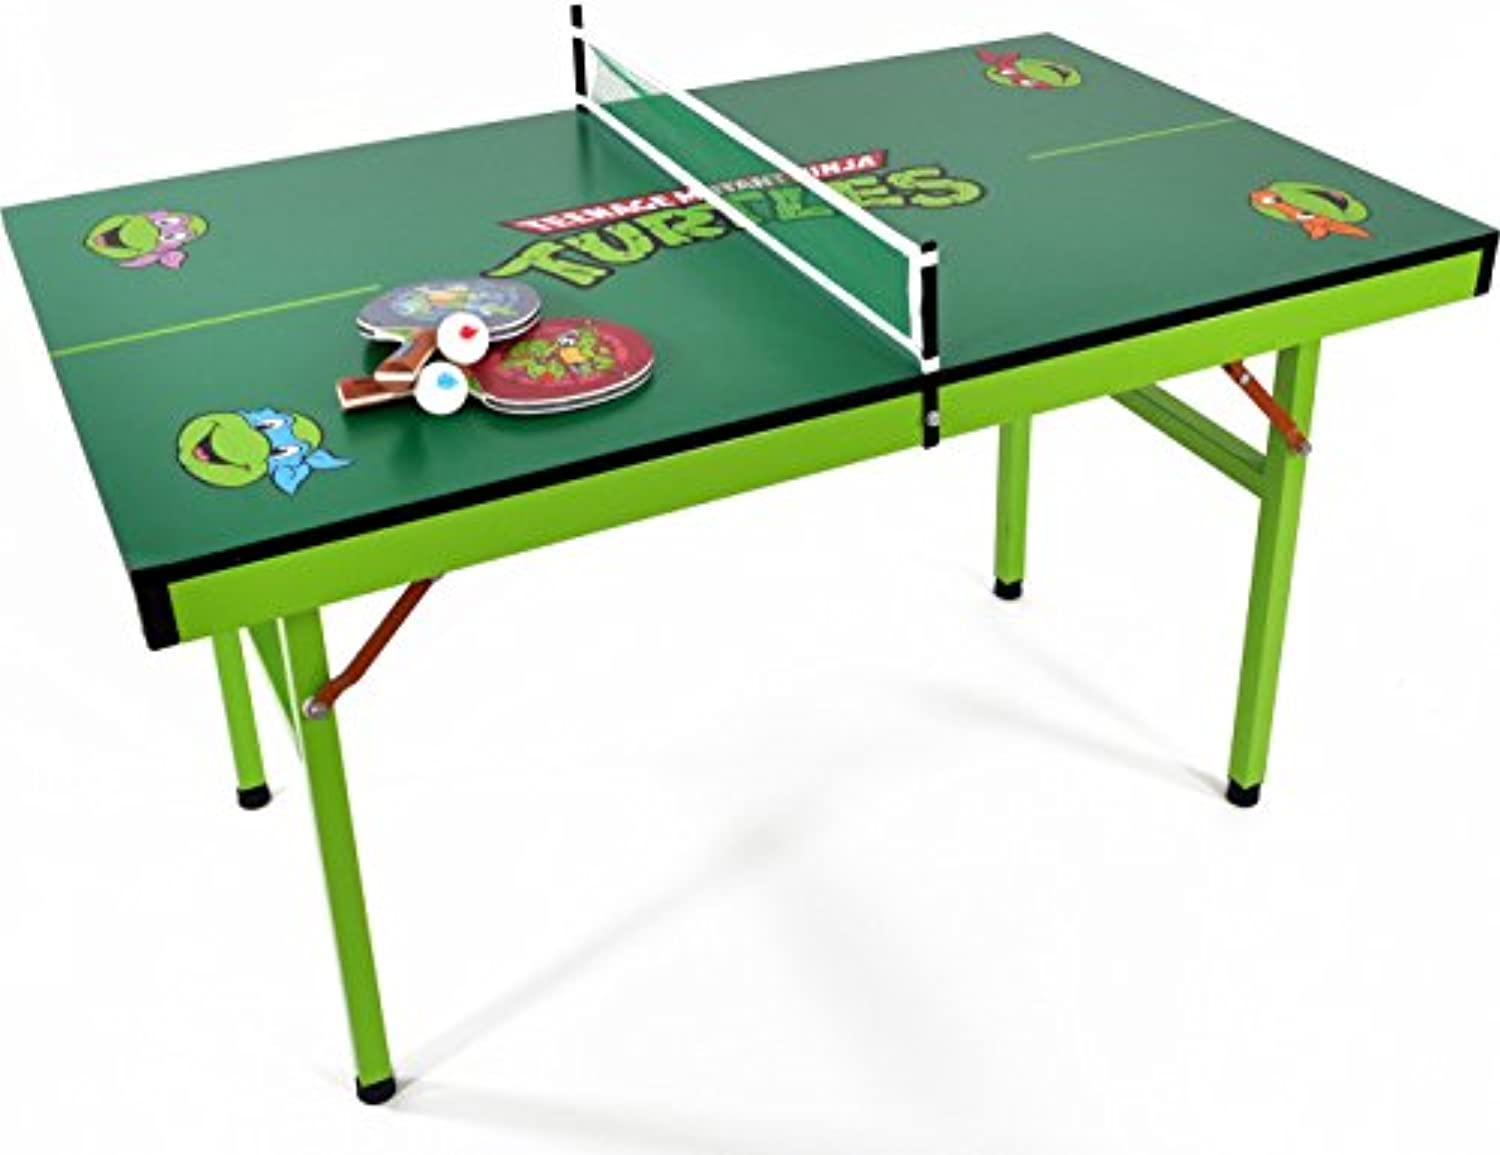 Kettler Teenage Mutant Ninja Turtles Junior Table Tennis Table